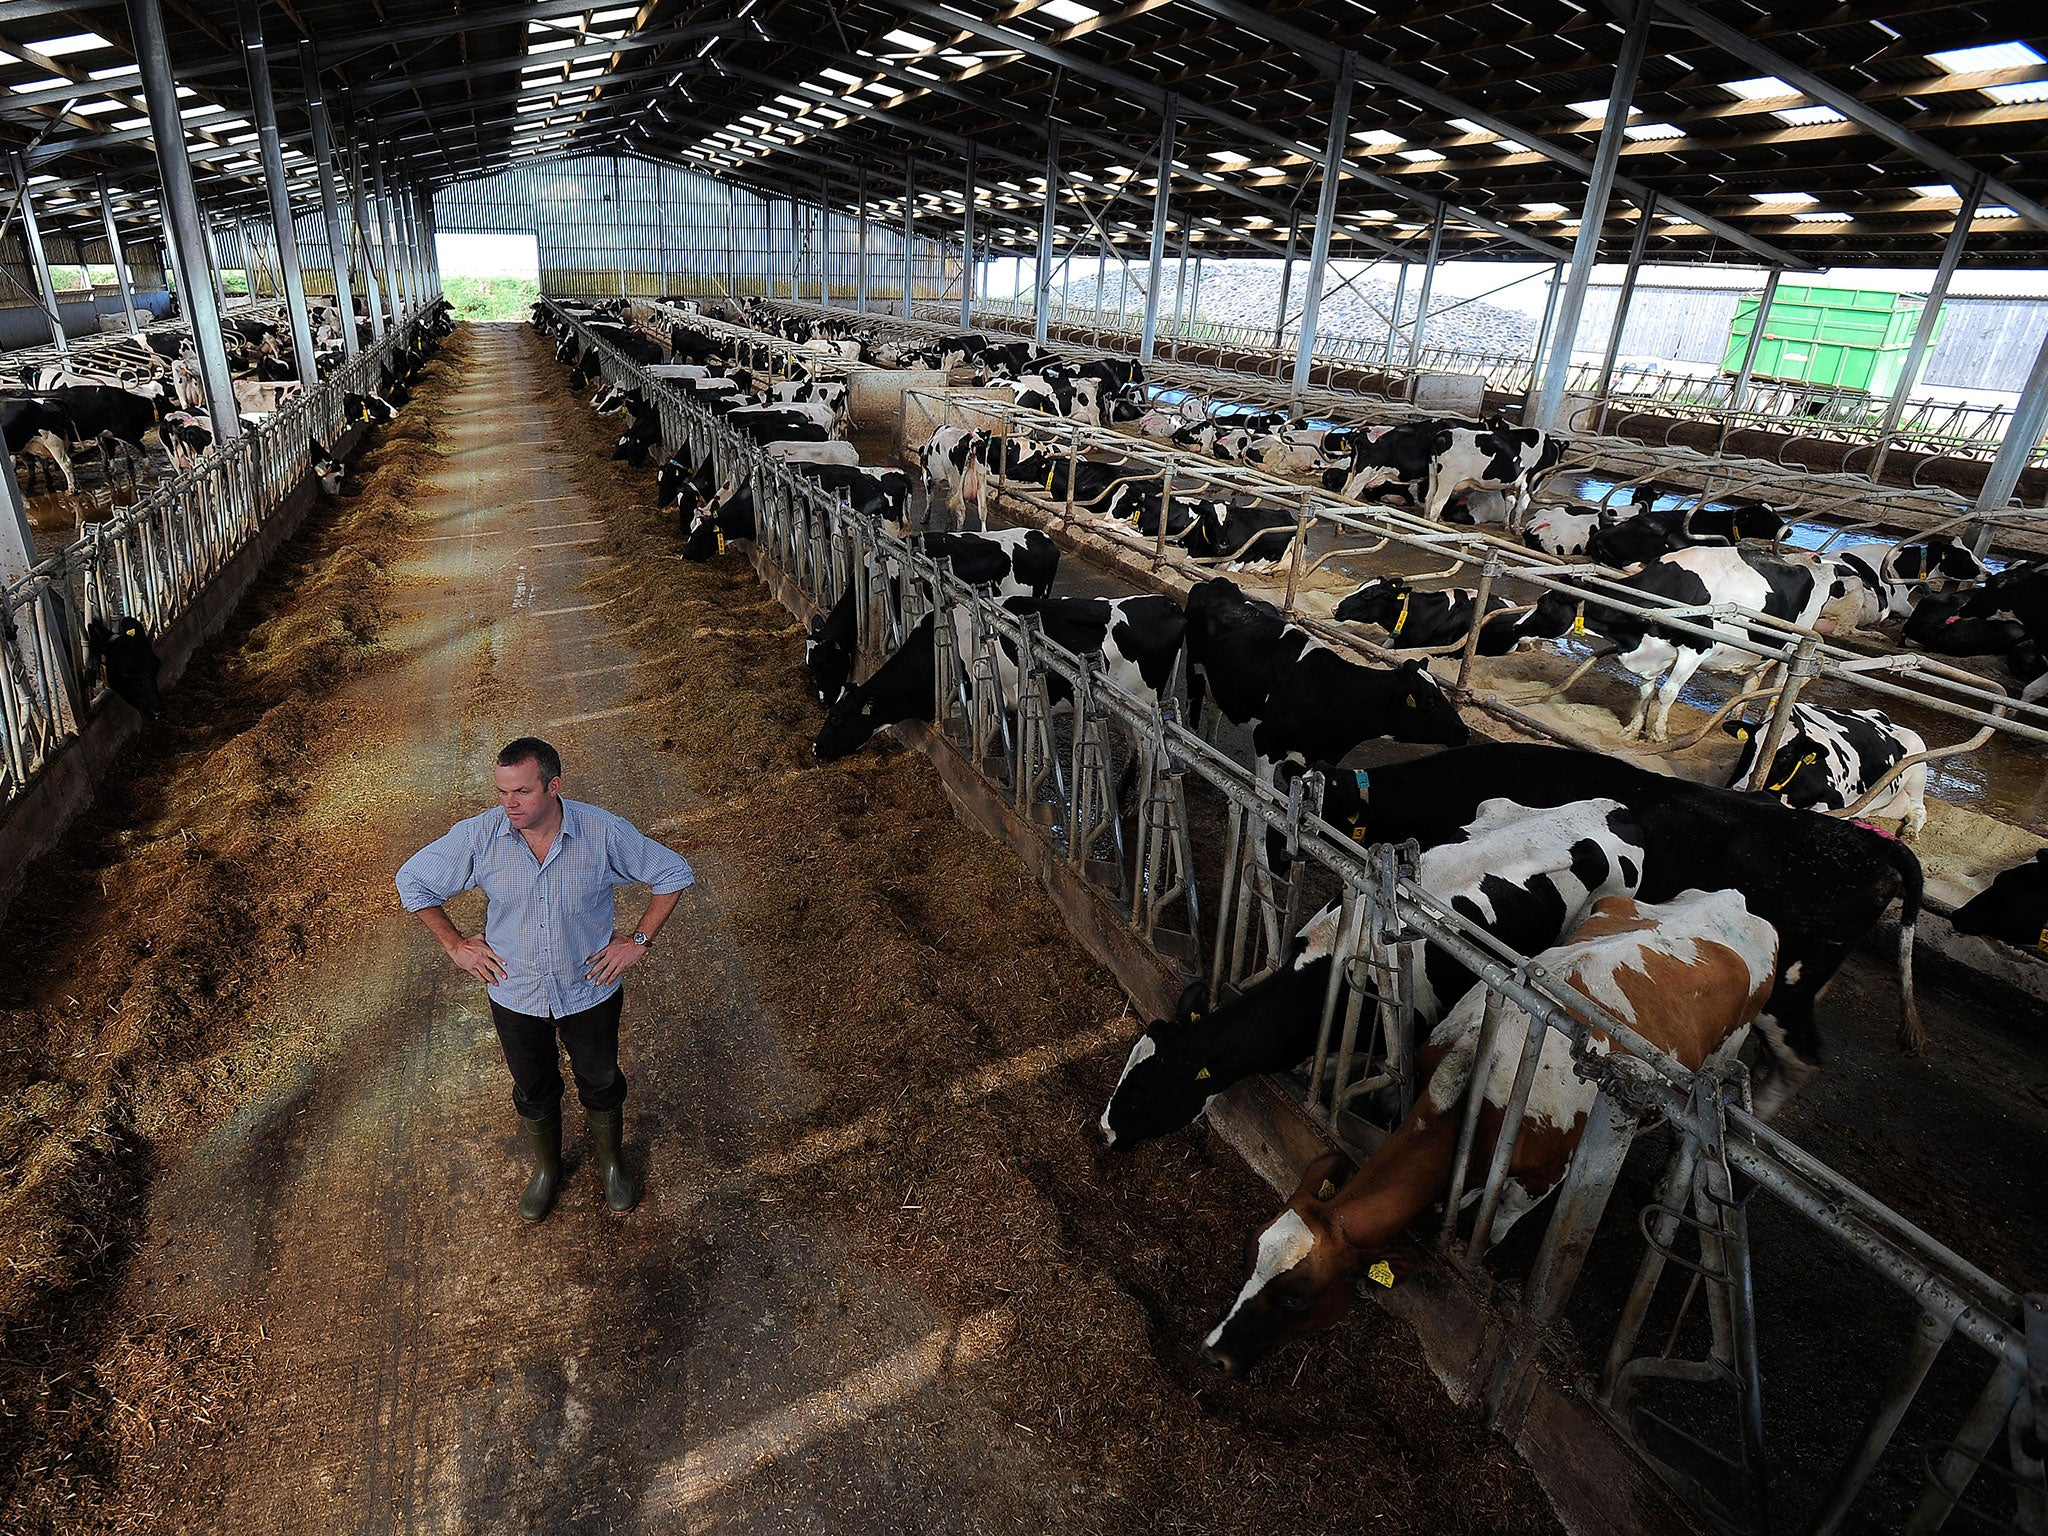 Plummeting milk price prompts 'stealth' rise of 2,000-cow ...